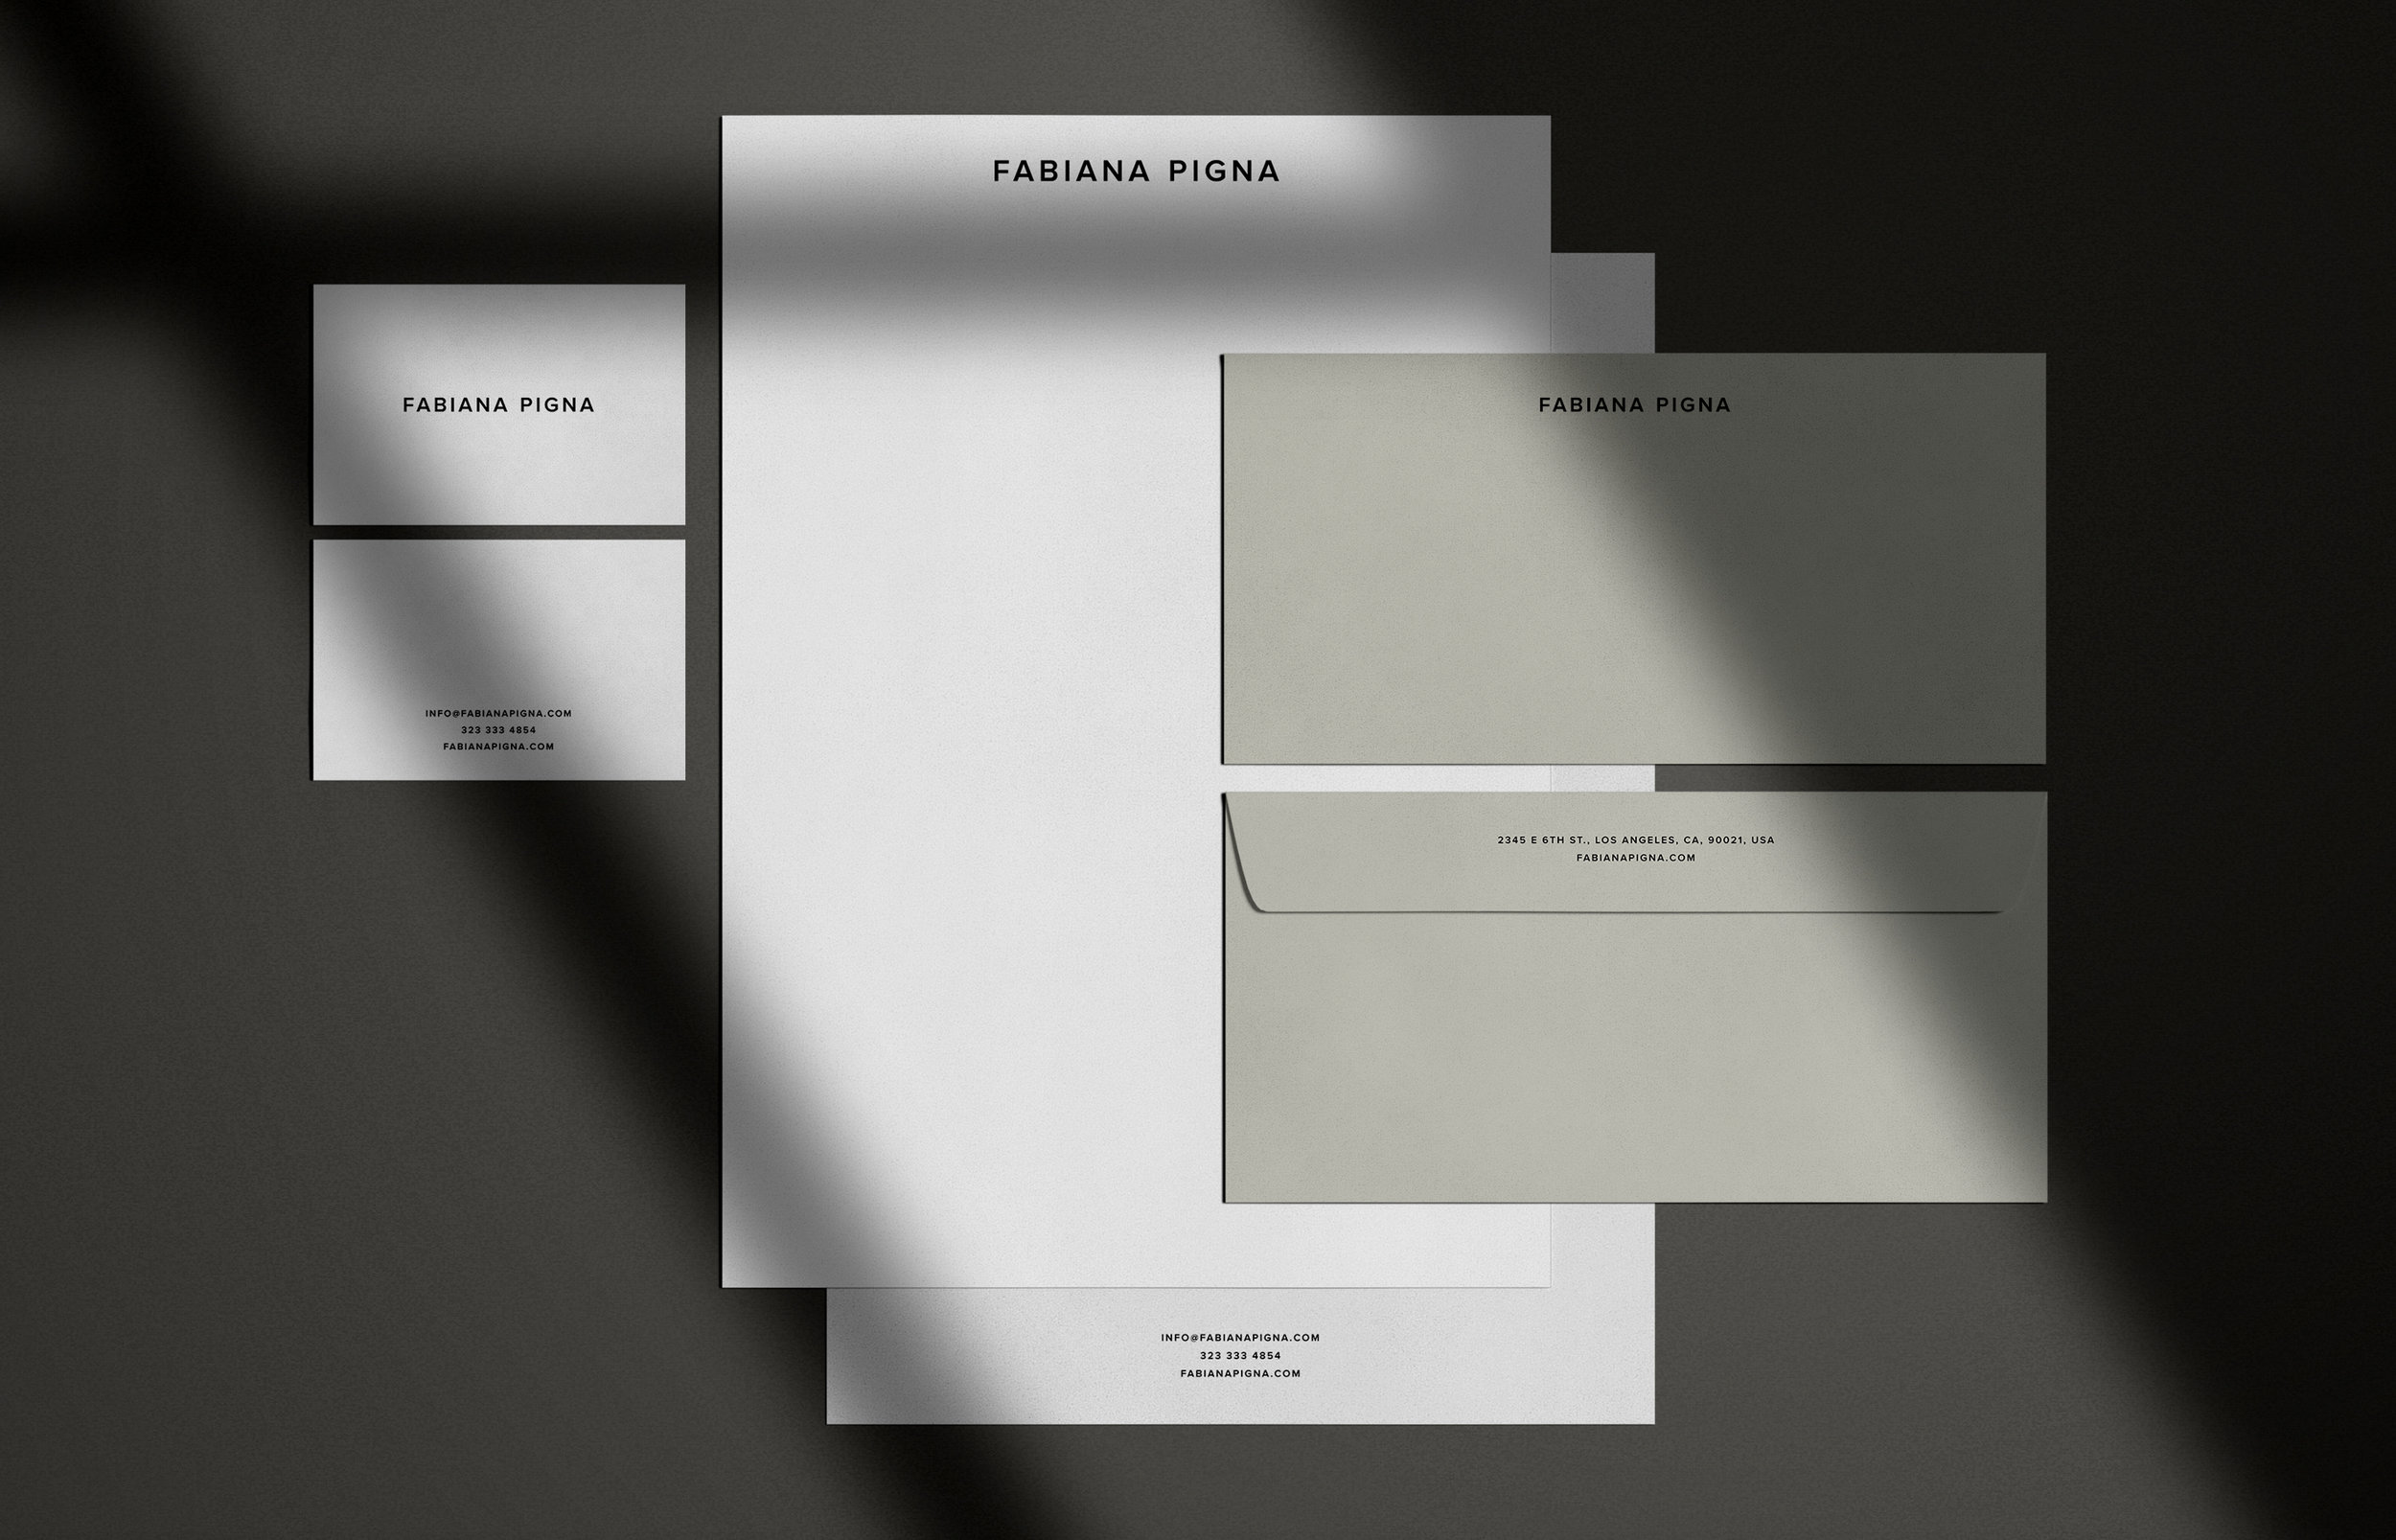 Fabiana-Pigna-branding-and-stationery-v2.jpg